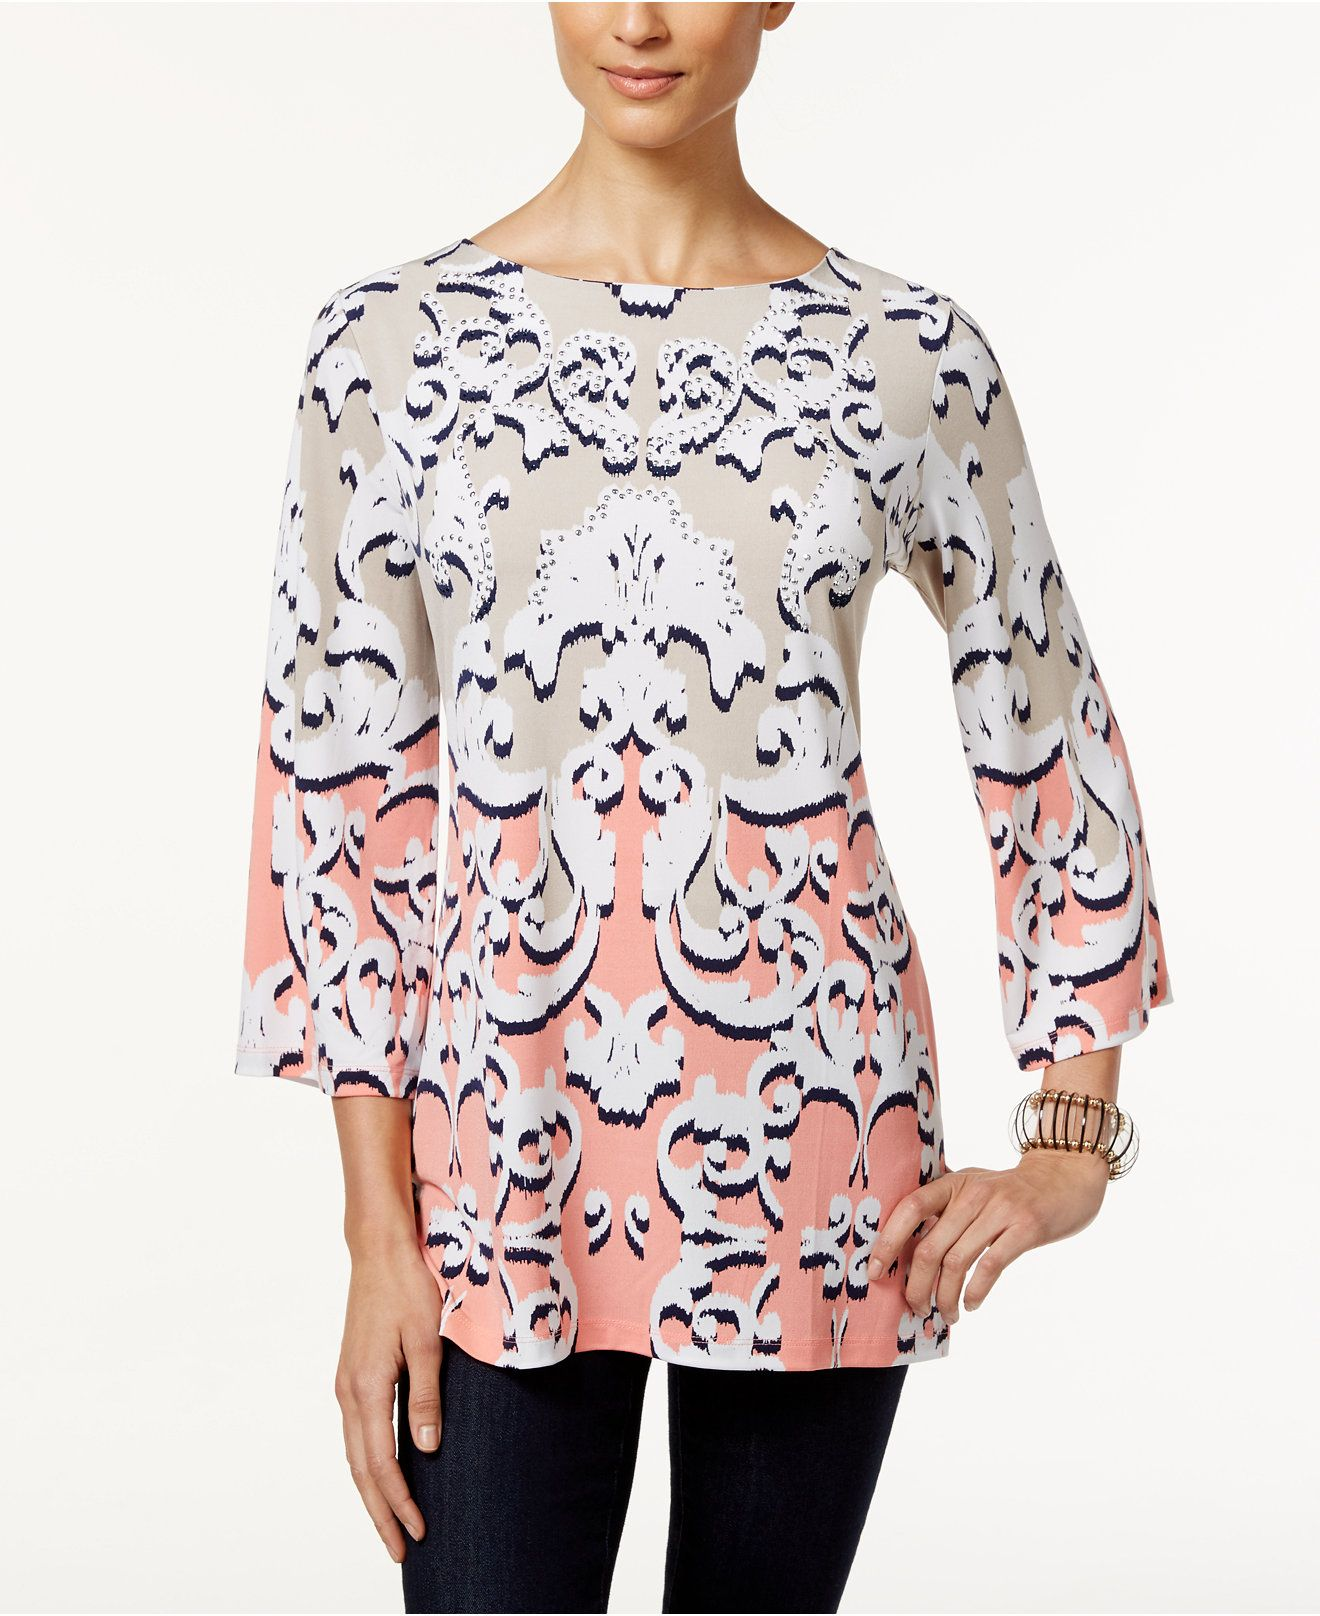 JM Collection Mixed-Print Rhinestone Tunic, Created for